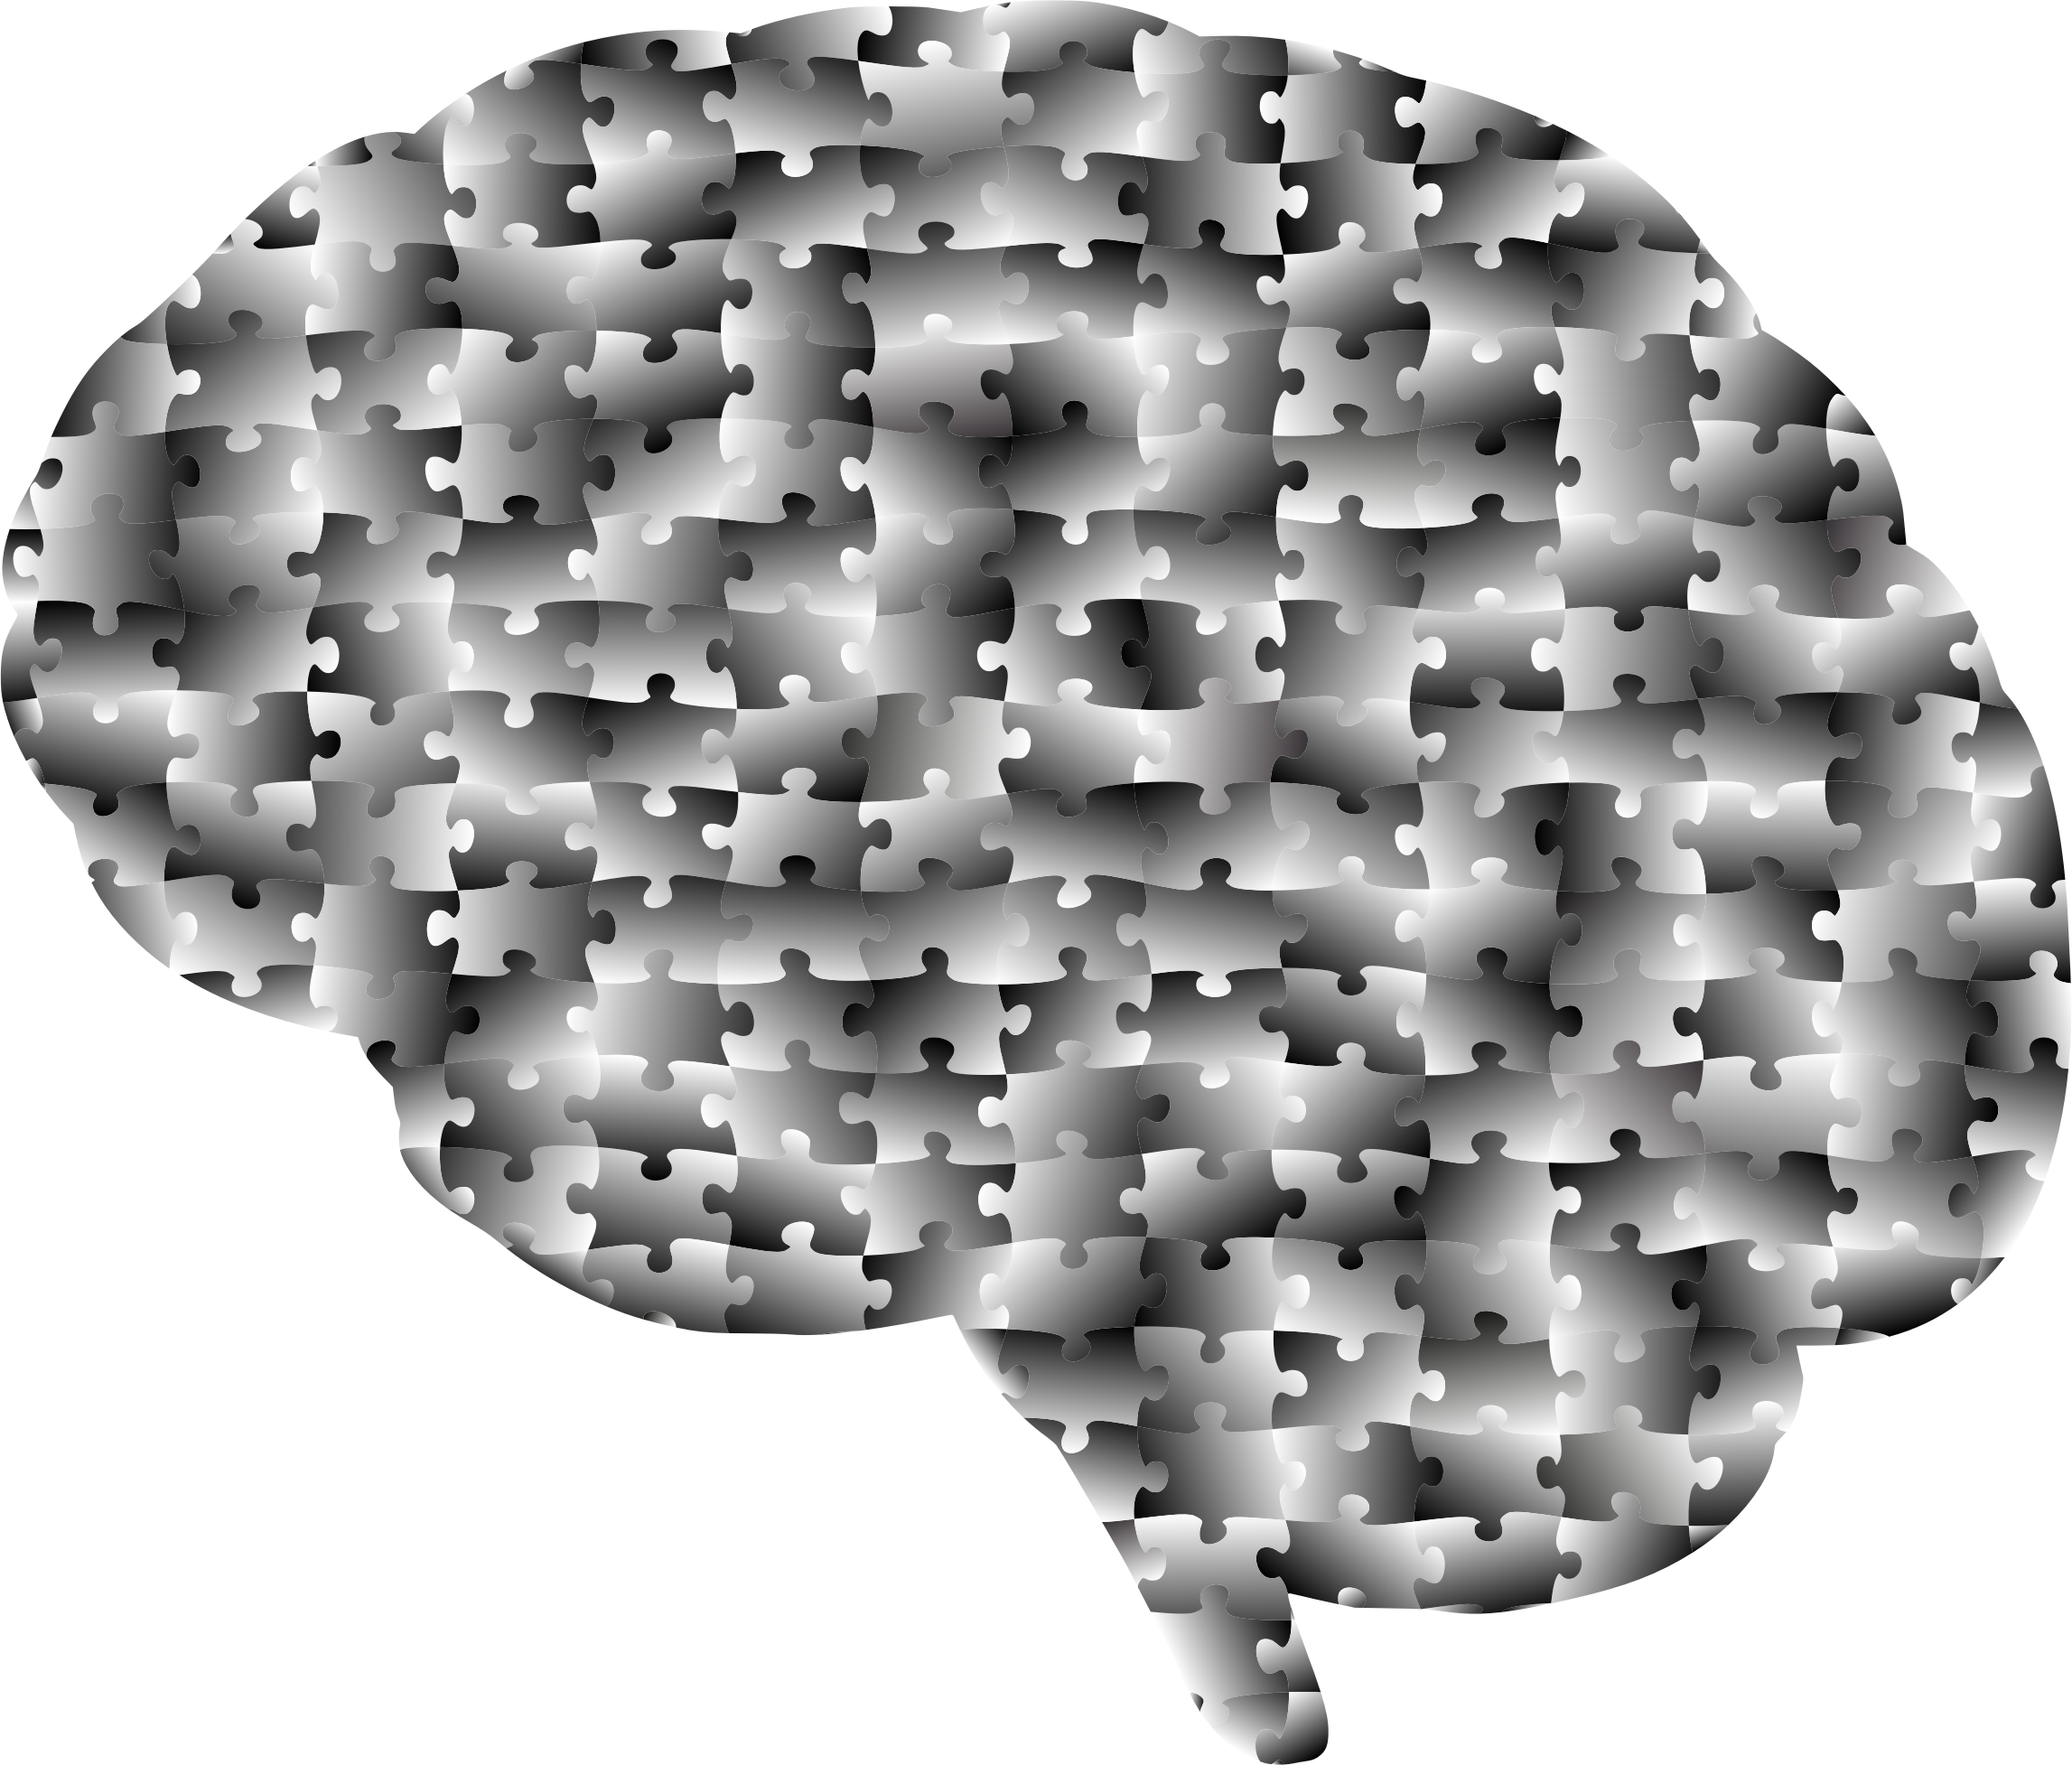 Brain Jigsaw Puzzle Grayscale by GDJ